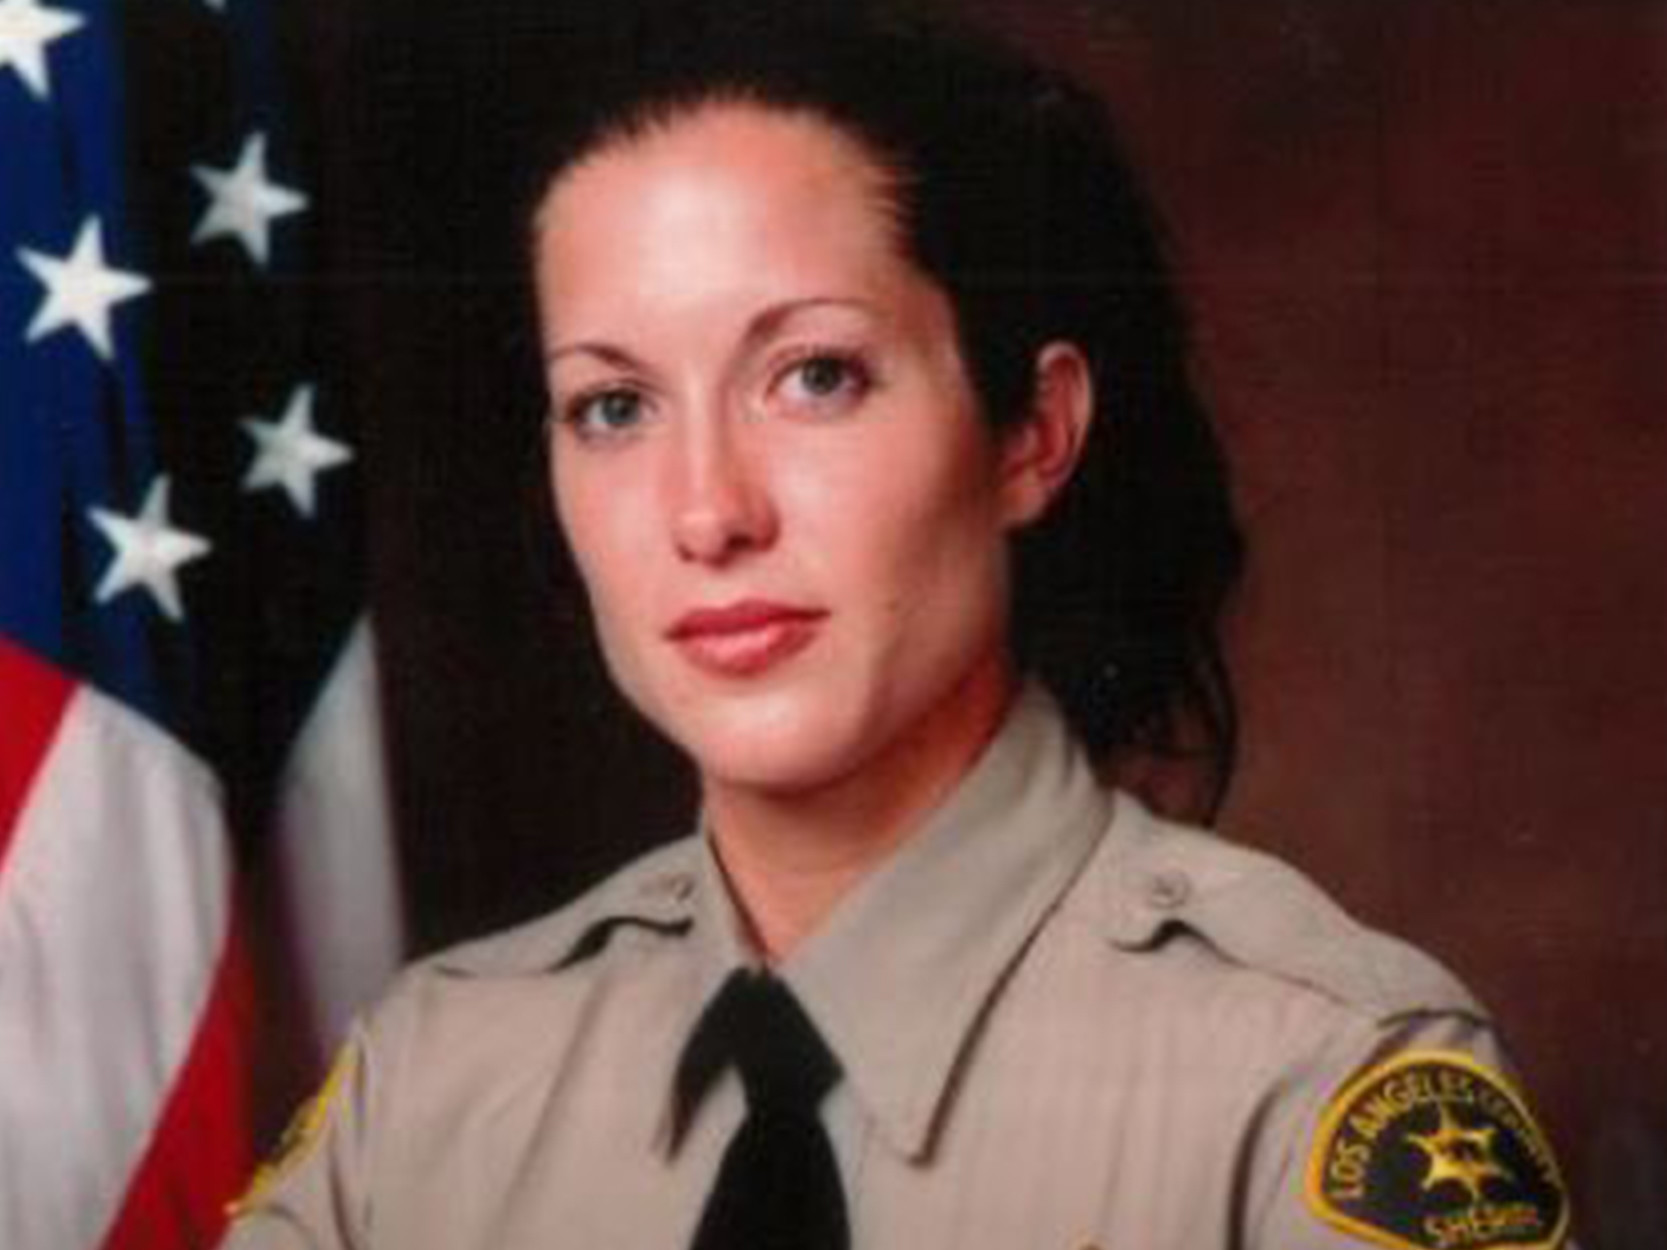 Off-duty Los Angeles sheriff's detective killed after helping elderly woman who fell in street